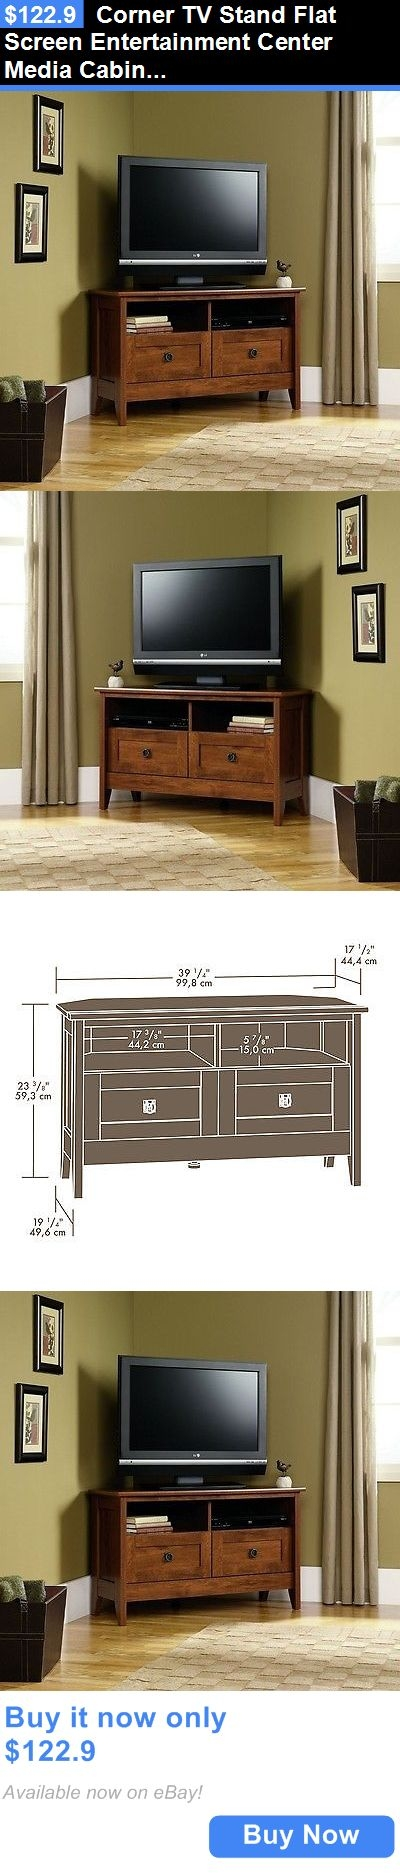 Magnificent Trendy Flat Screen TV Stands Corner Units Within Best 10 Tv Stand Corner Ideas On Pinterest Corner Tv Corner Tv (Image 38 of 50)